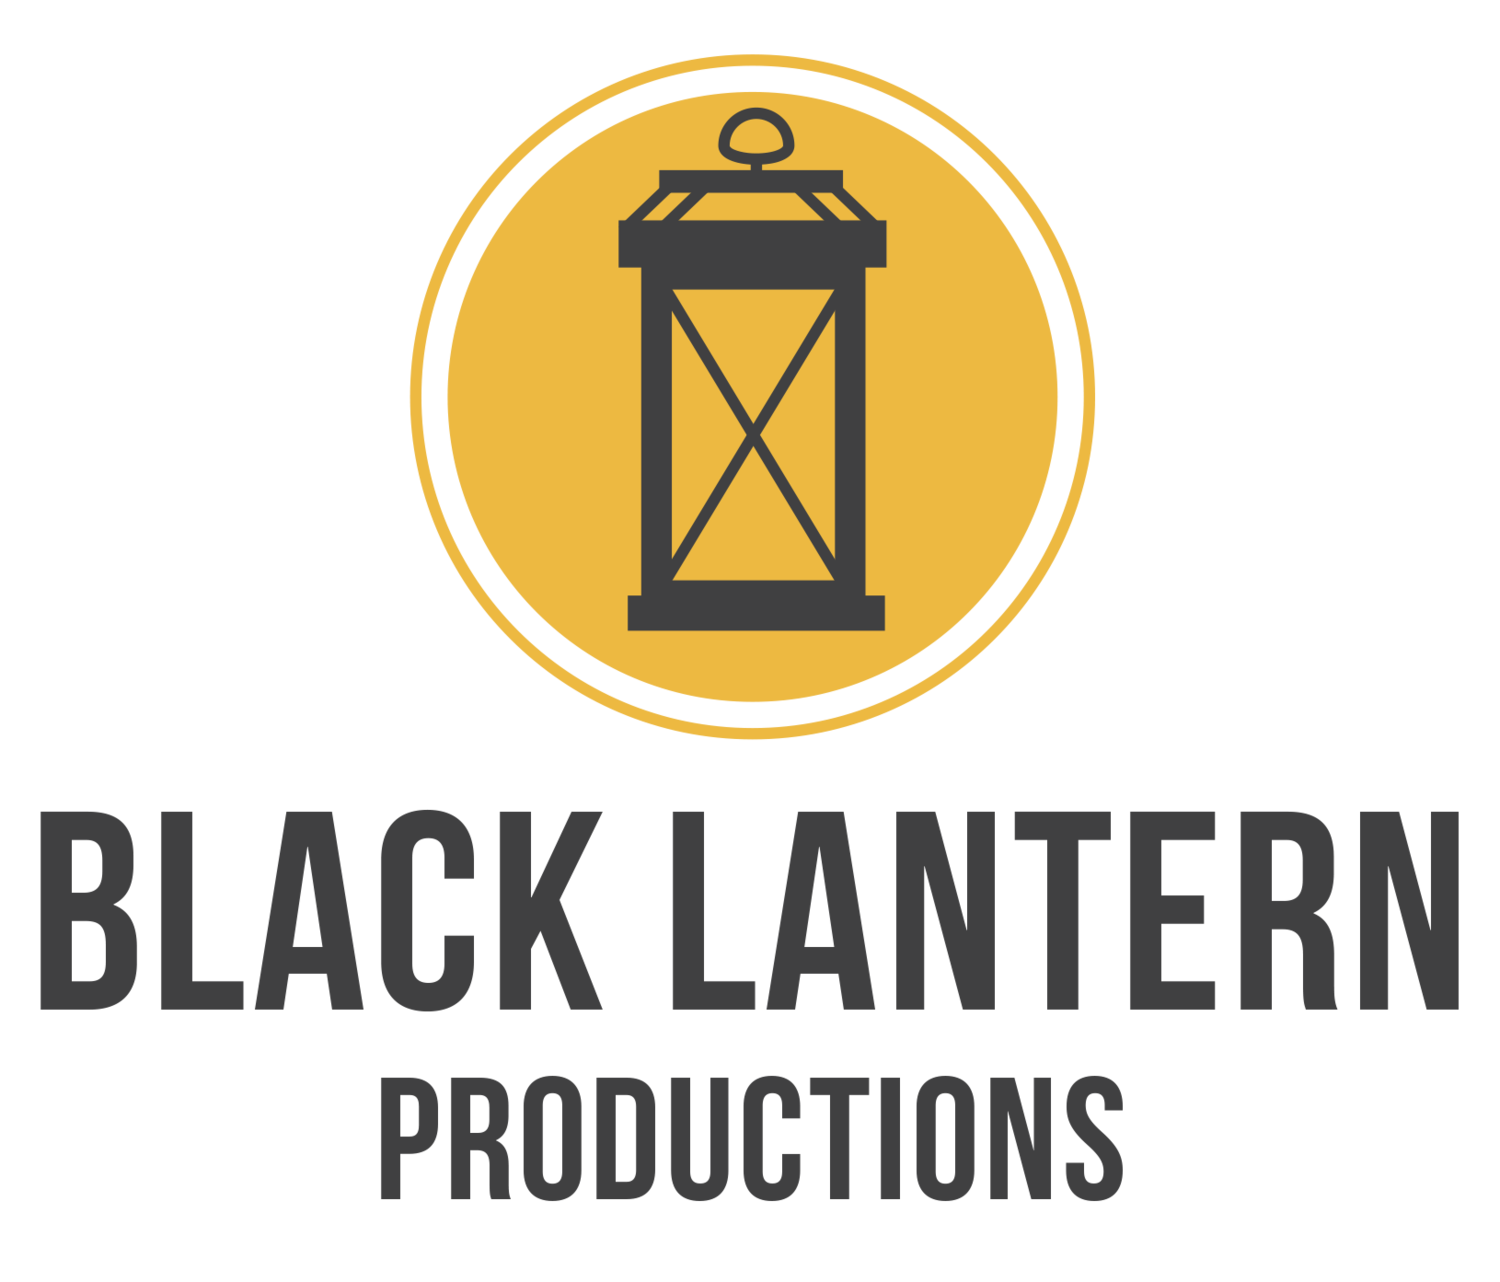 Black Lantern Productions